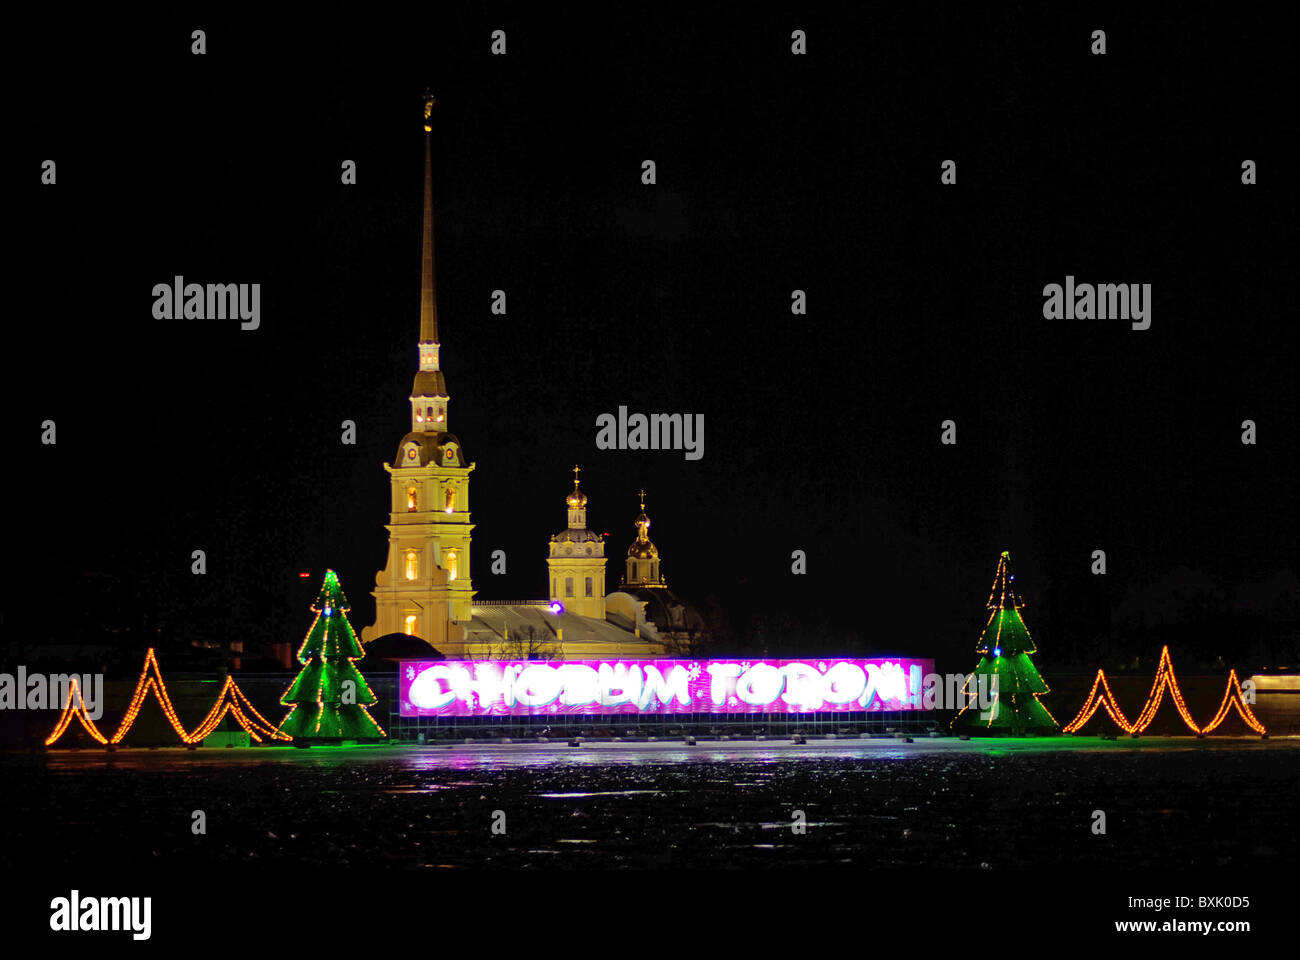 New Yaear night illumination of Saint-Petersburg's center. Peter and Paul fortress. - Stock Image